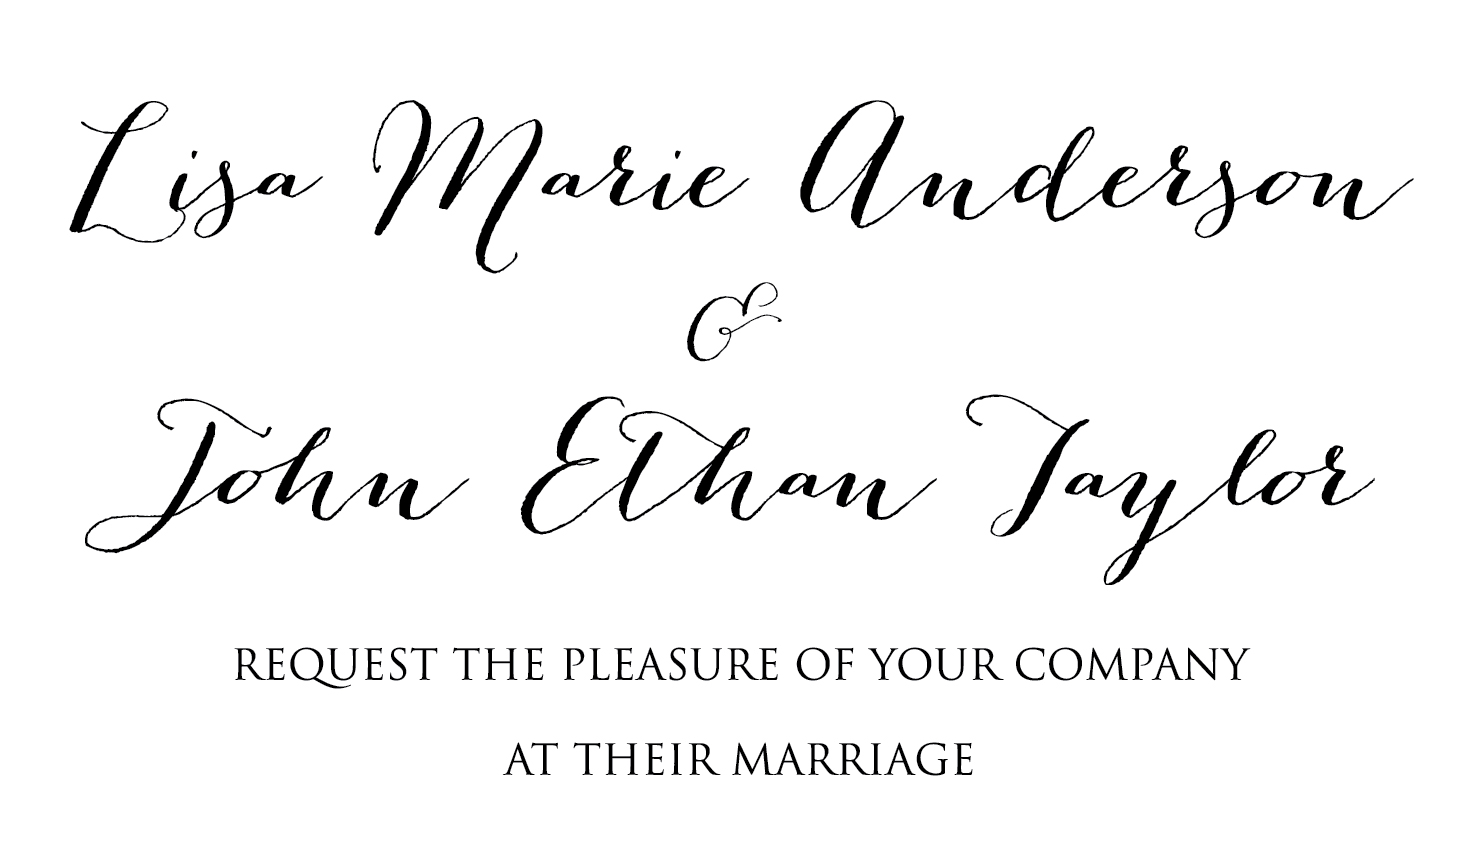 Wedding Invitation Fonts.Best Wedding Invitation Fonts Find Your Best Match